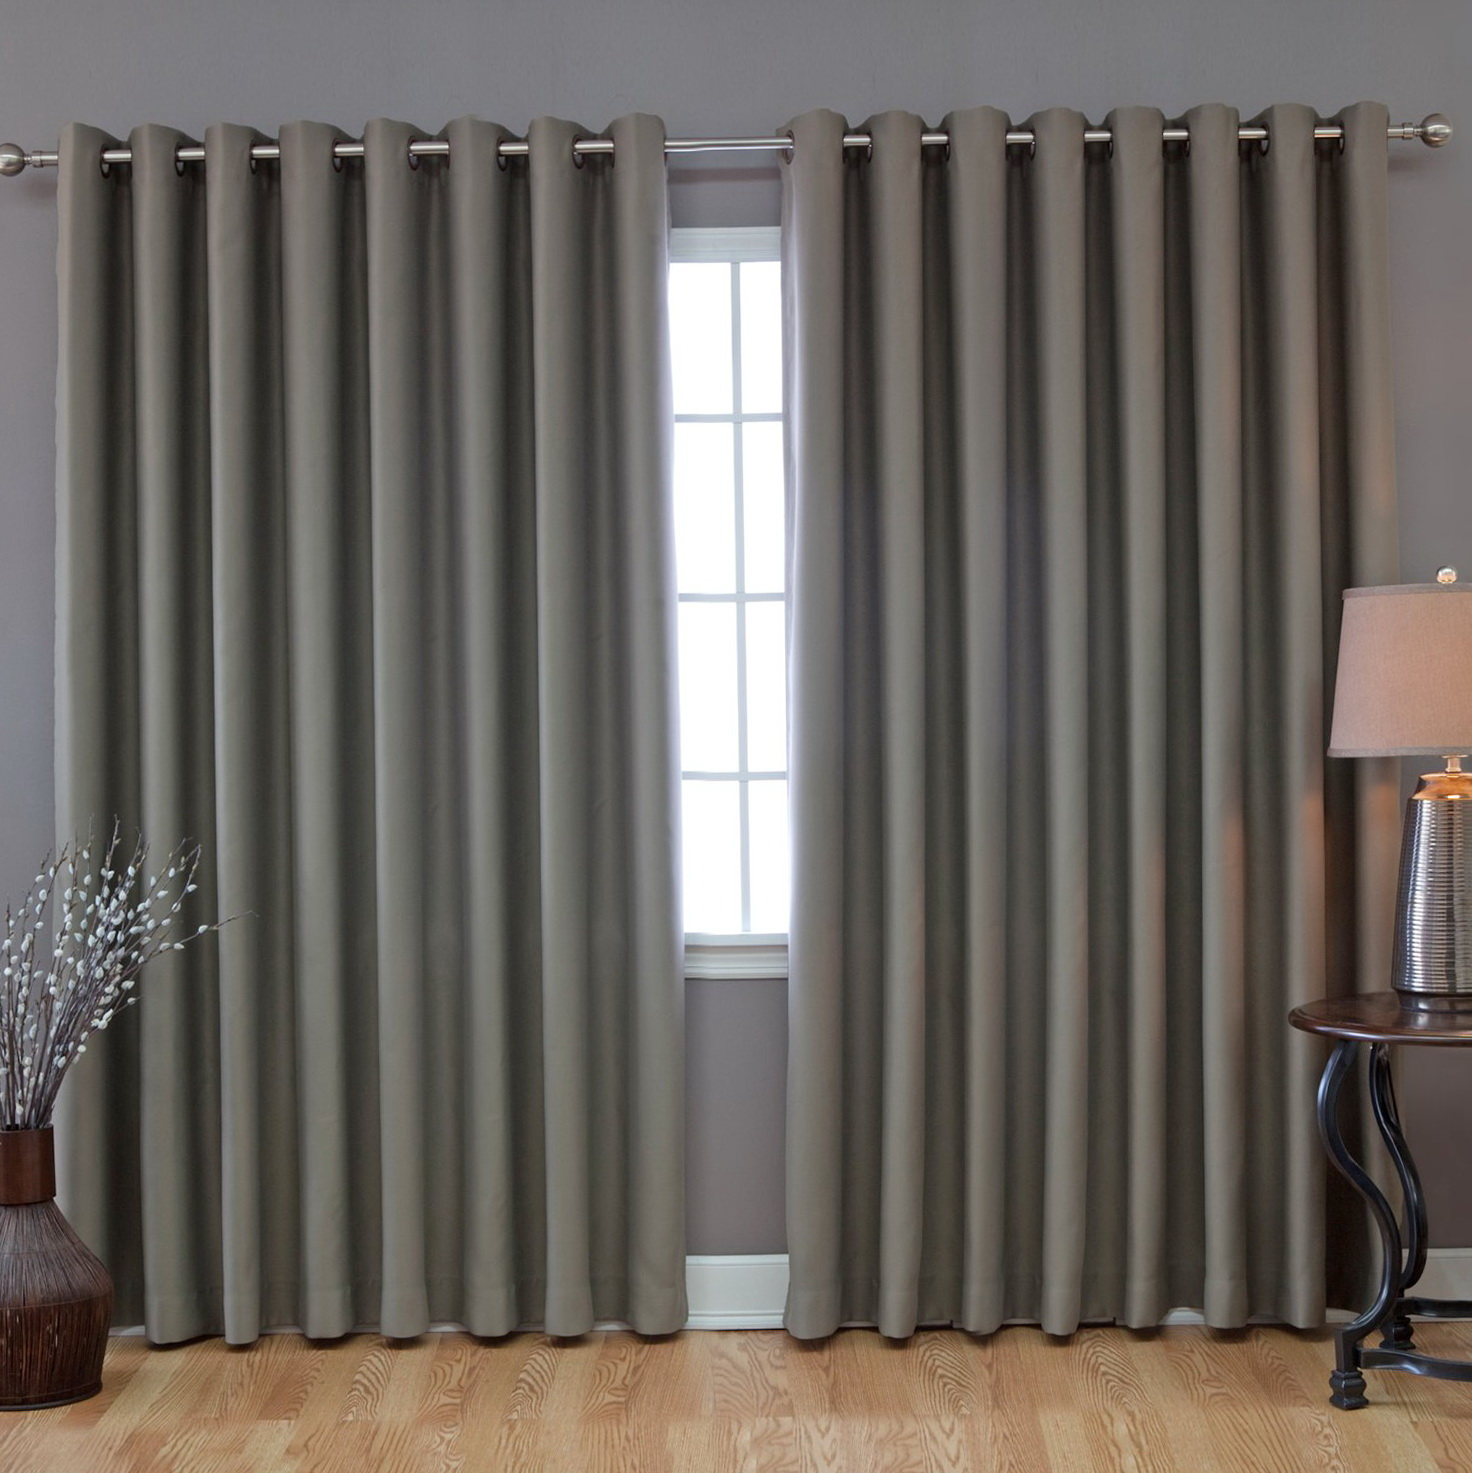 Patio Door Curtains And Blinds Ideas